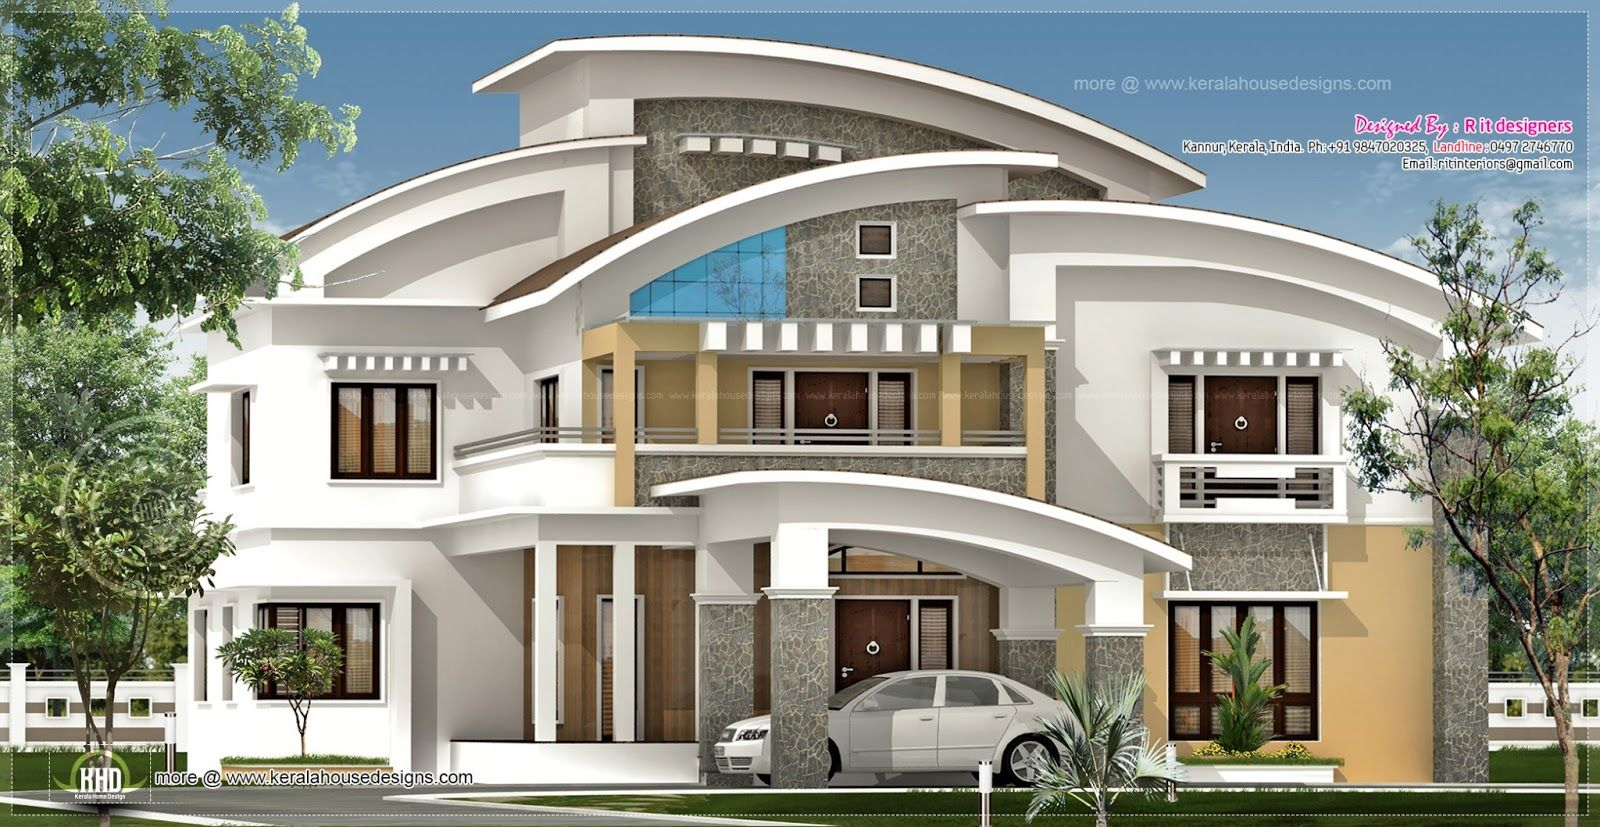 Awesome luxury homes plans 8 french country luxury home for Modern luxury villa design